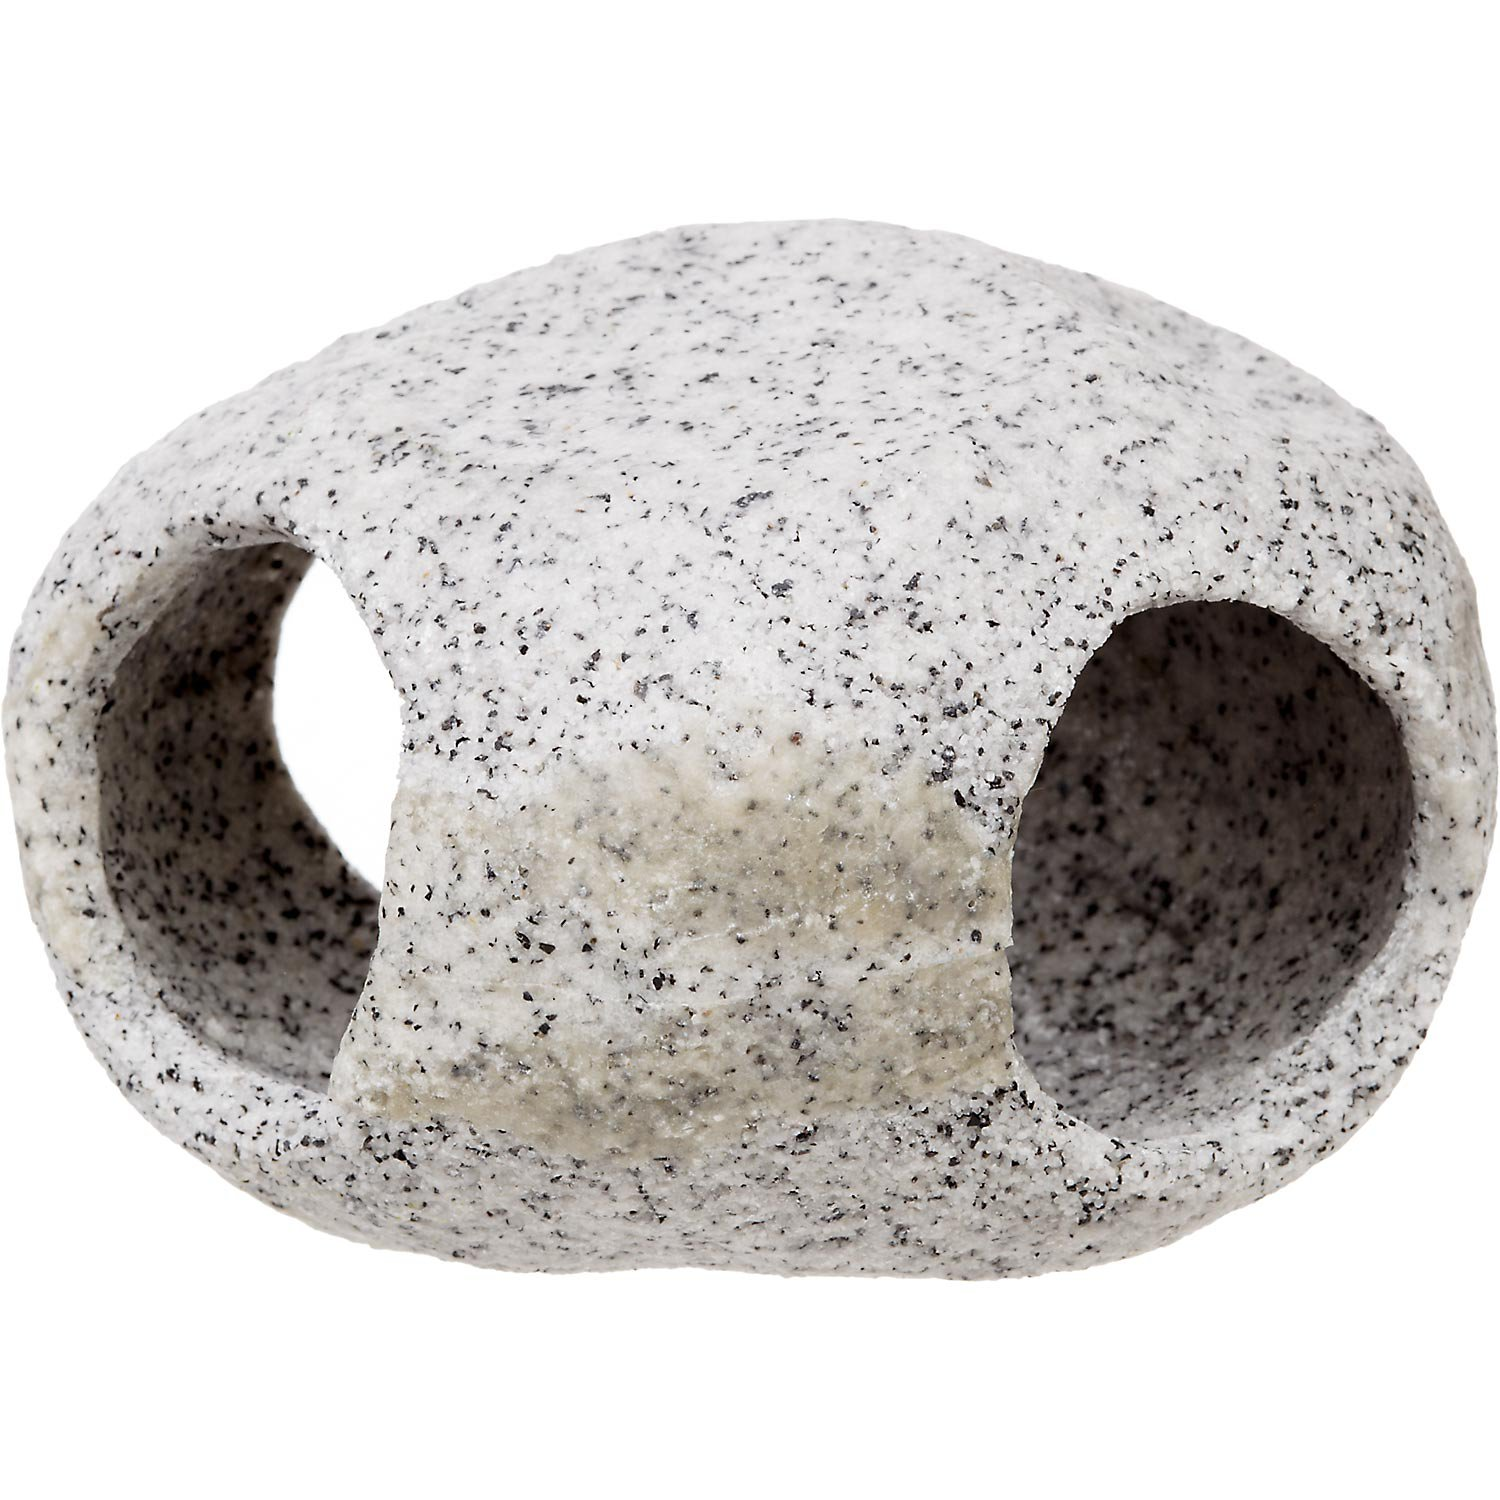 Penn Plax Hide-Away Stackable Stone Aquarium Ornament